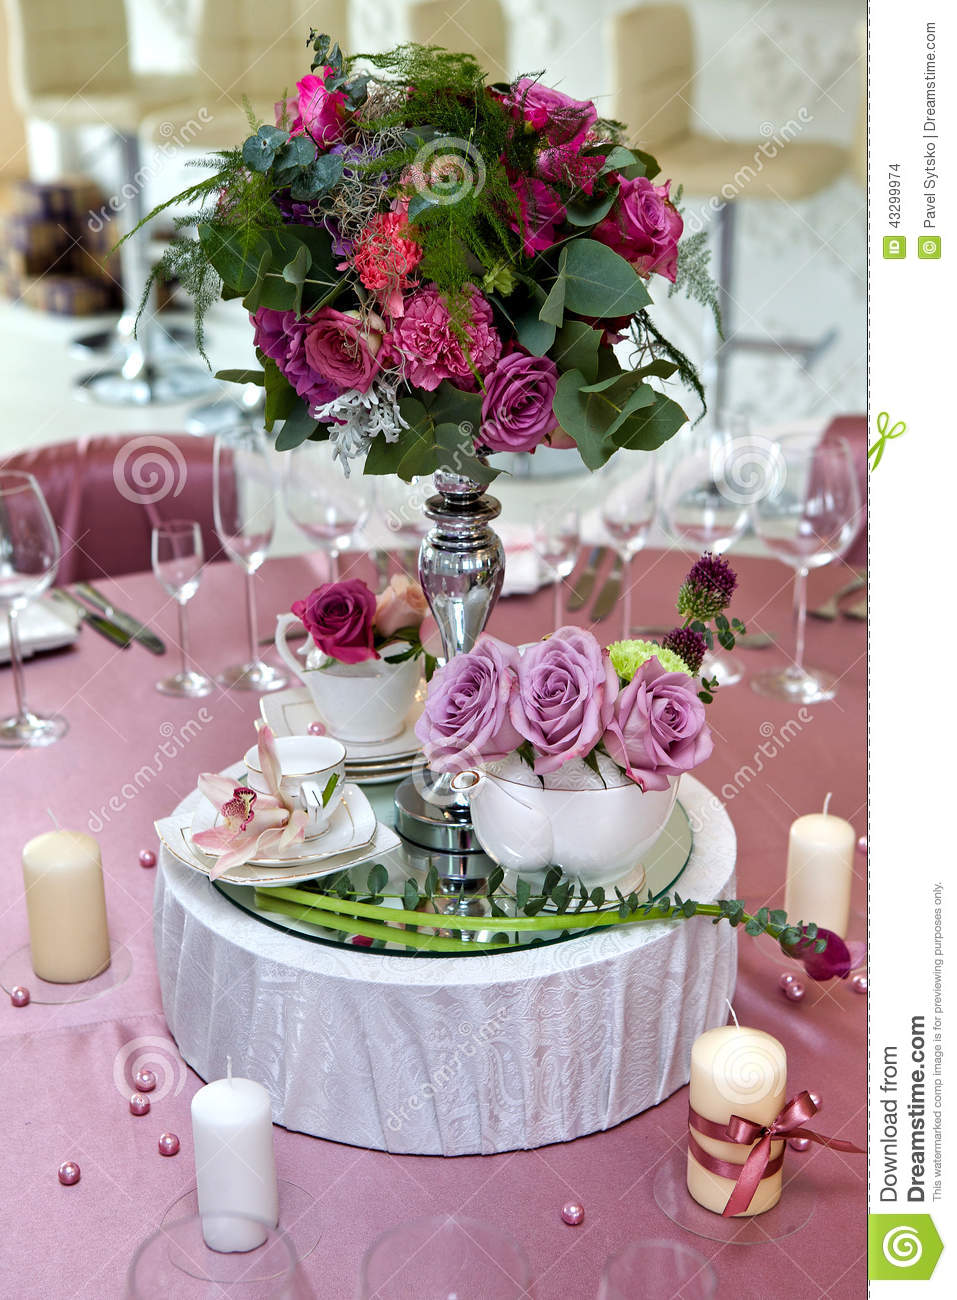 Still Life Wedding Table Setting At A Wedding Reception Stock Photo Image 43299974